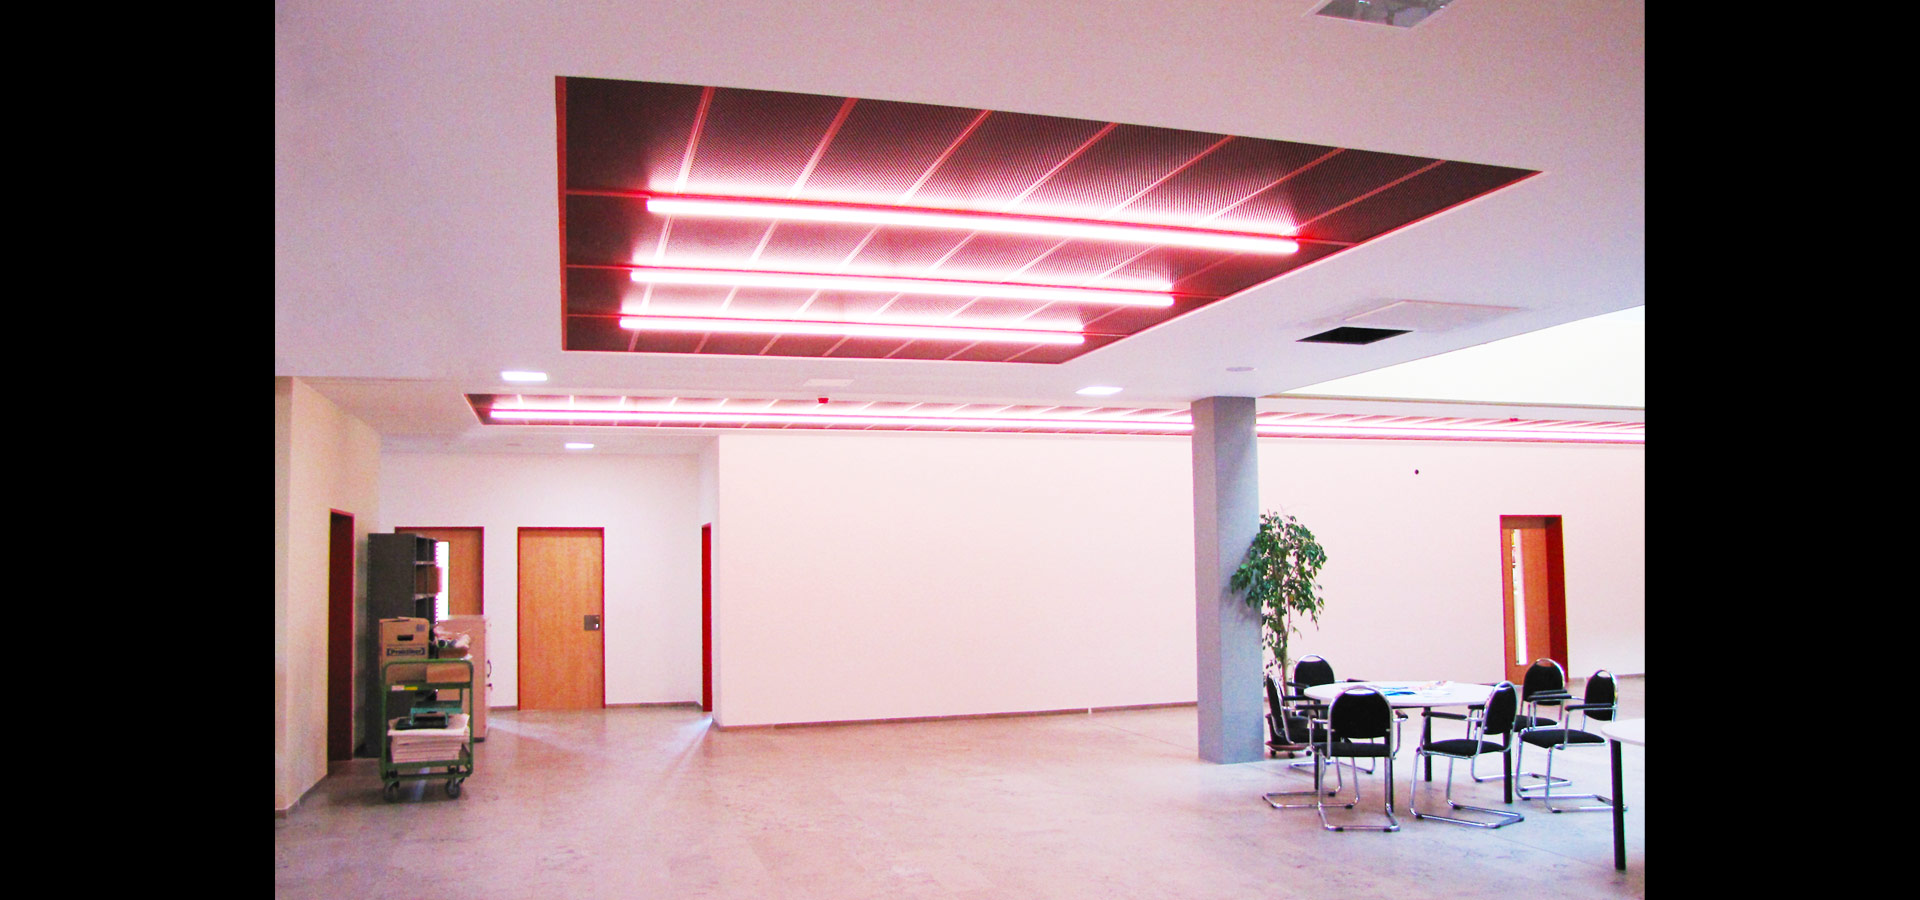 Luxsystem school corridor lighting and emergency lighting SL 20.2 light line